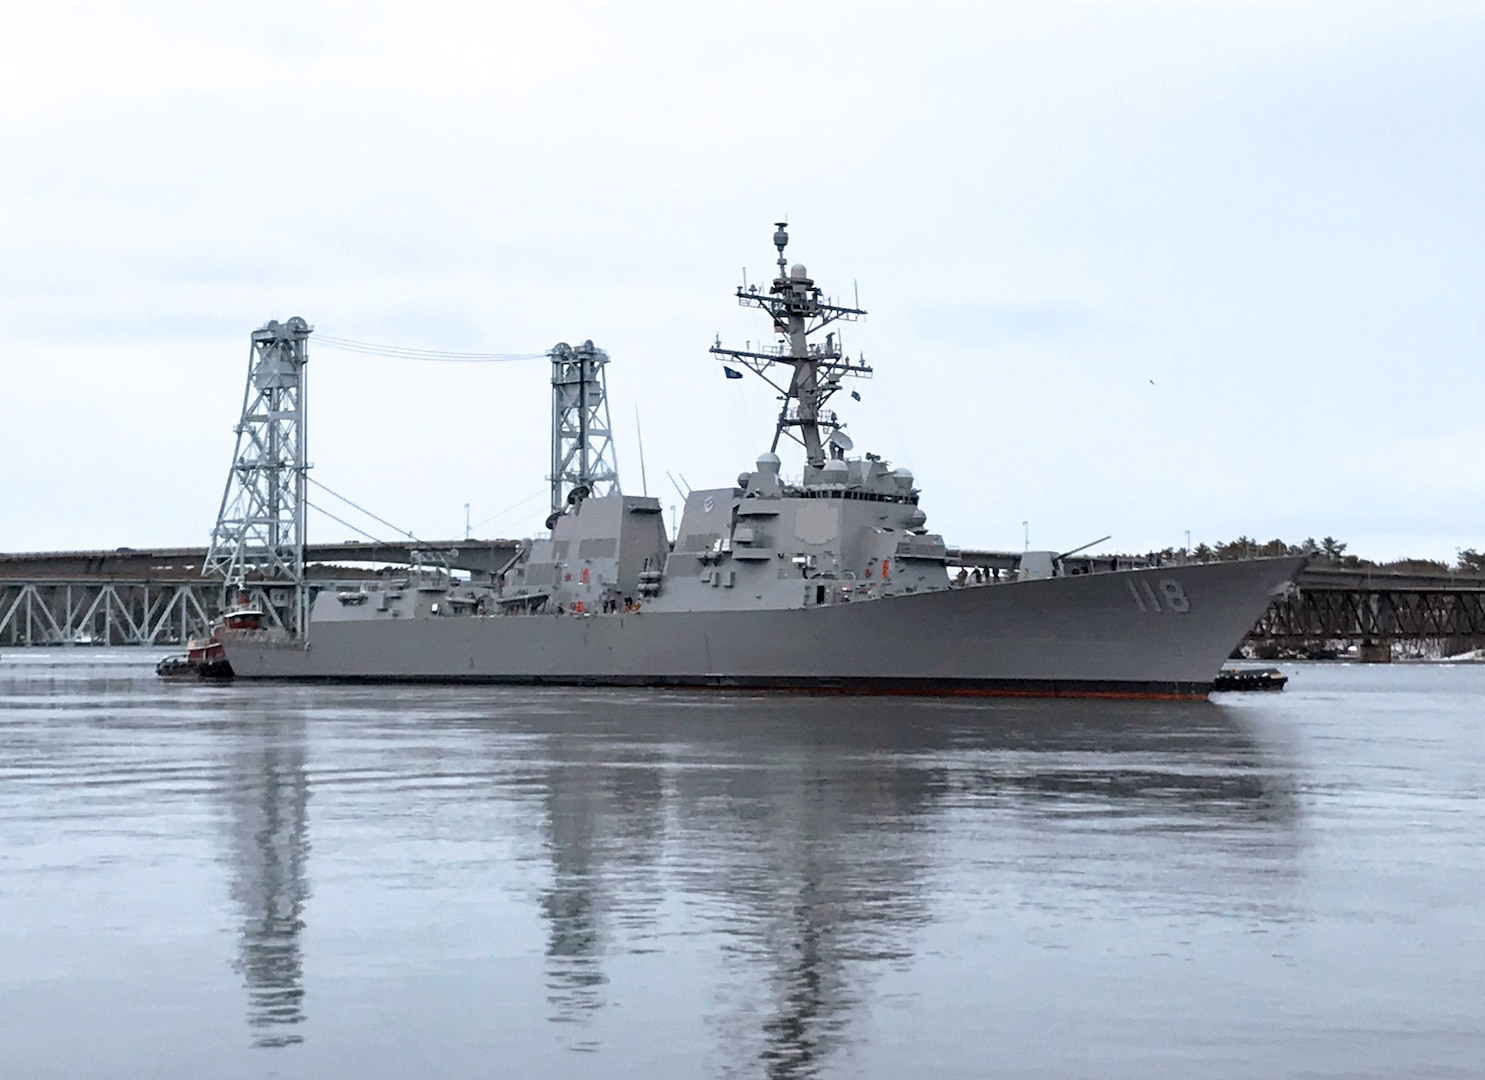 The future USS Daniel Inouye (DDG 118) departs General Dynamics Bath Iron Works shipyard on Feb. 3 for acceptance trials.